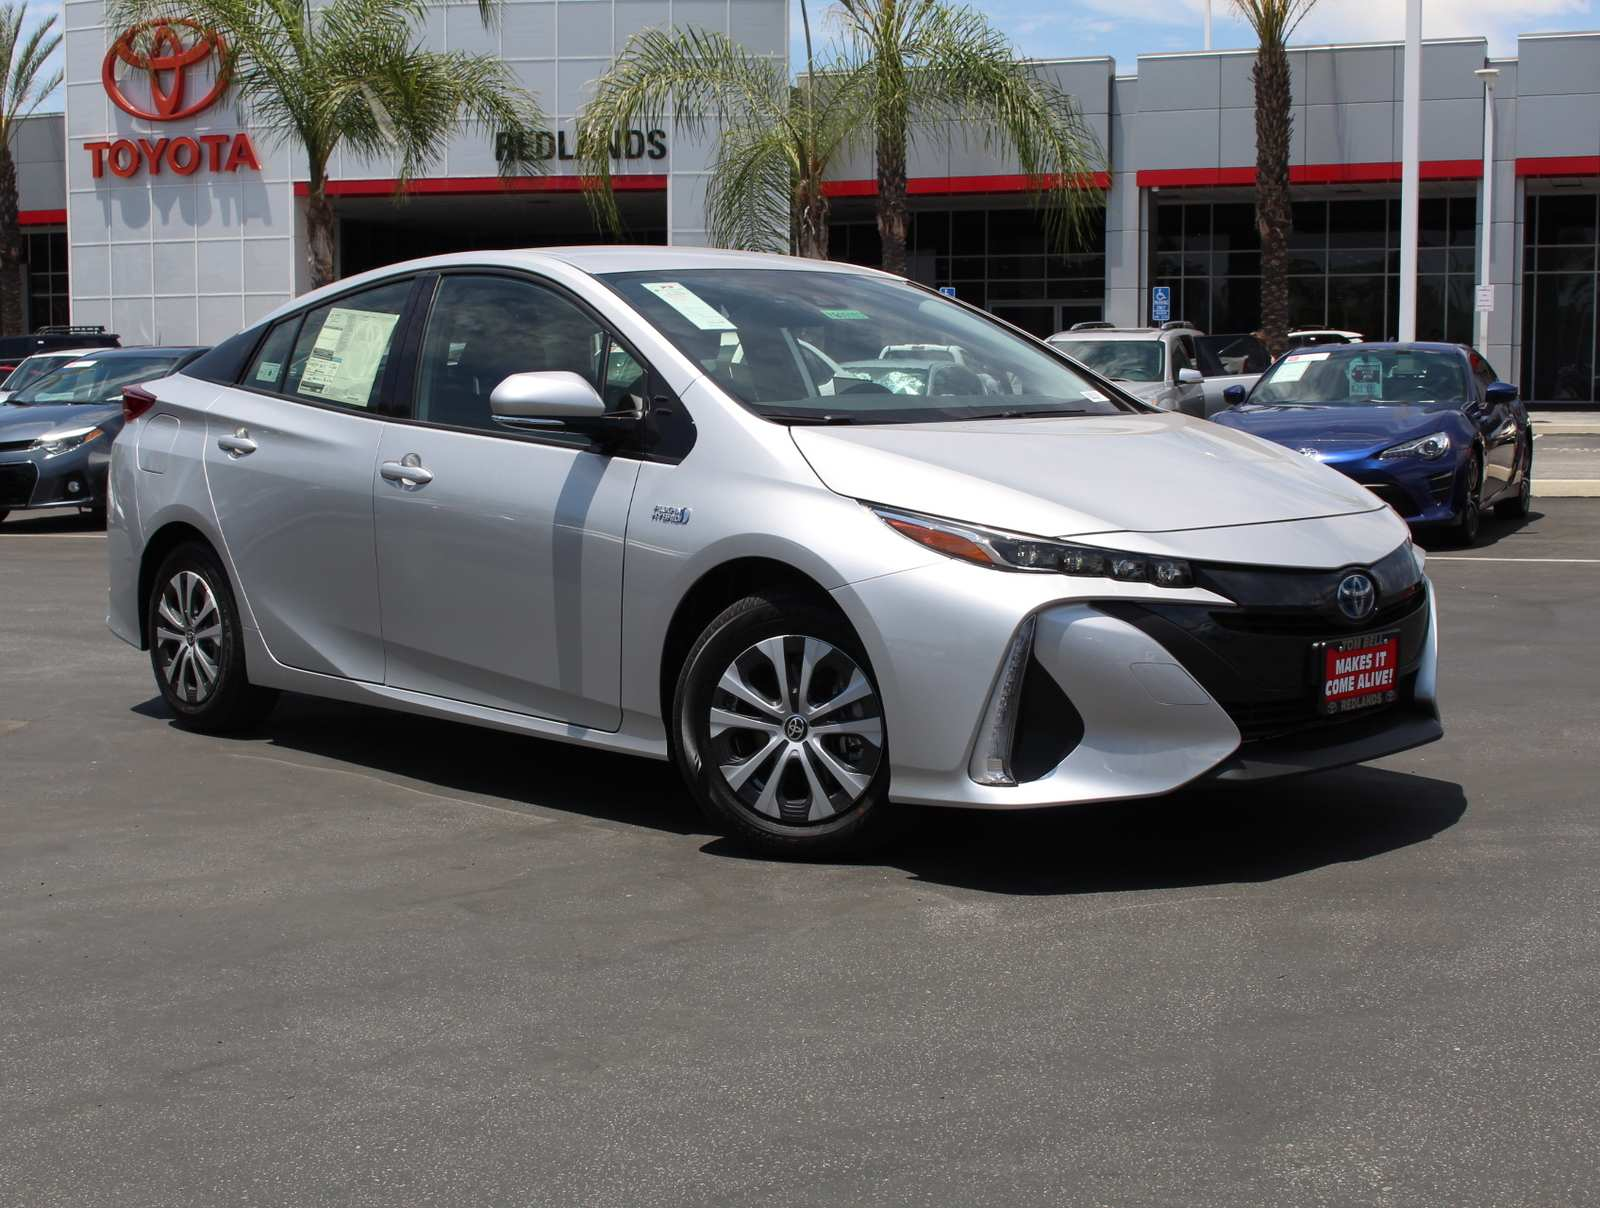 93 All New Toyota Prius 2020 Redesign and Concept with Toyota Prius 2020